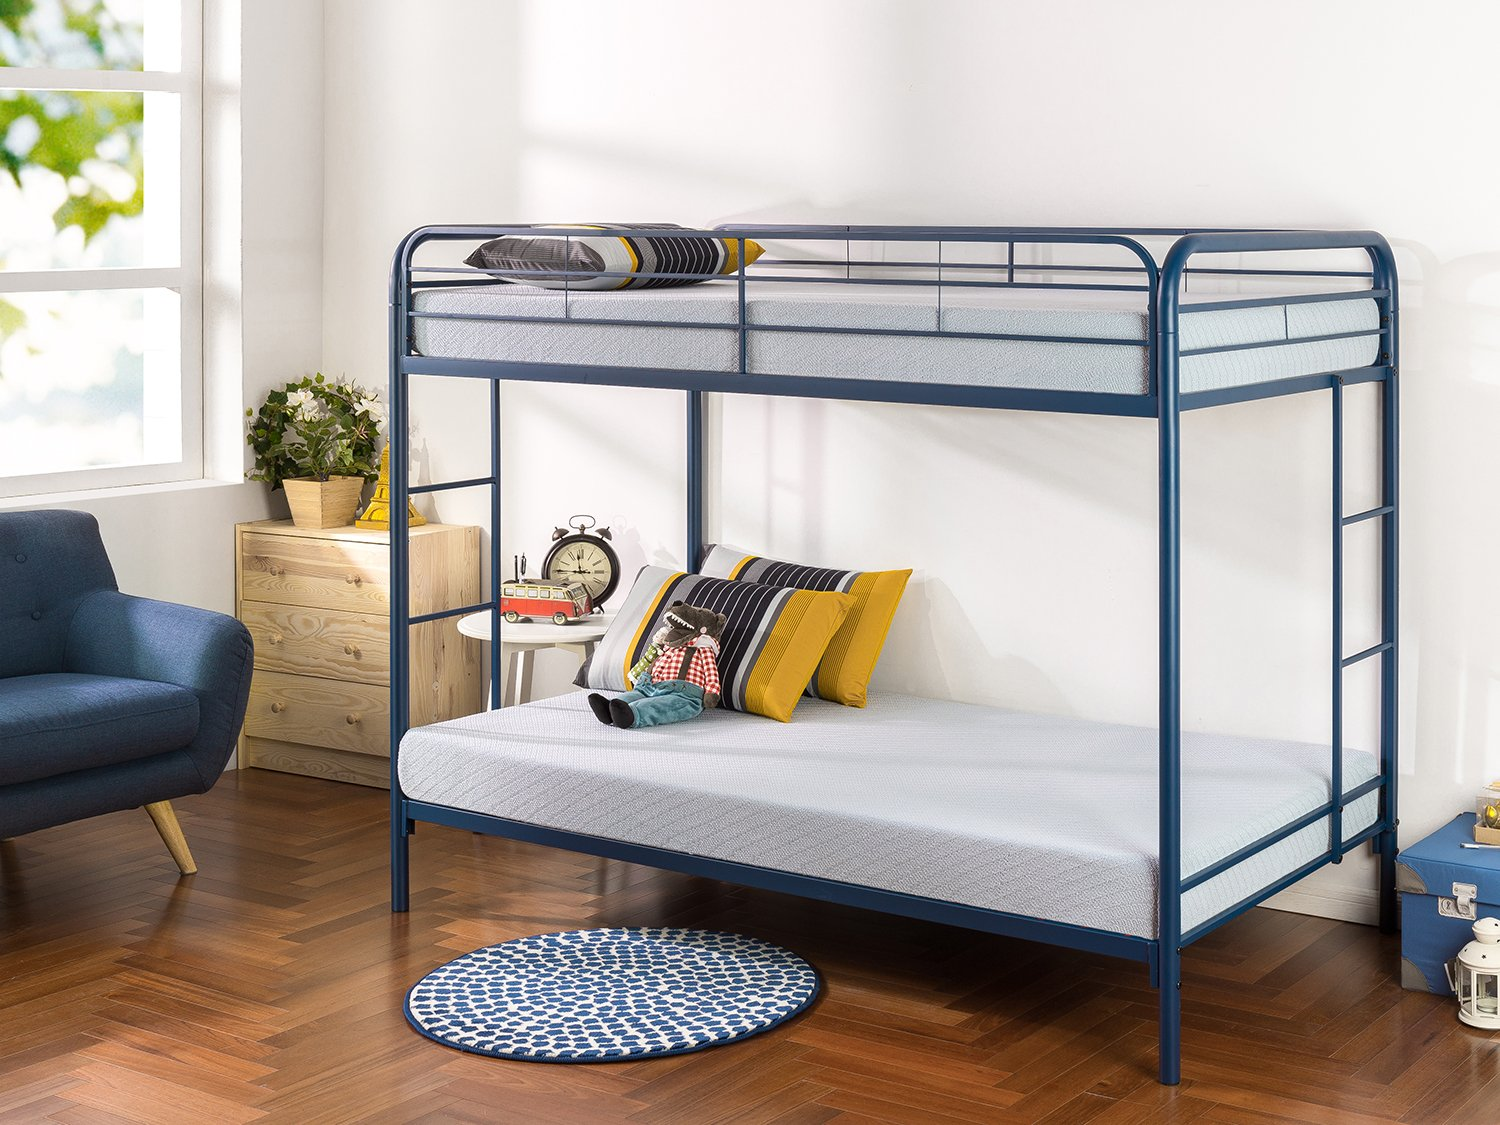 Zinus Easy Assembly Quick Lock Metal Bunk Bed Dual Ladders, Twin Over Twin, Blue